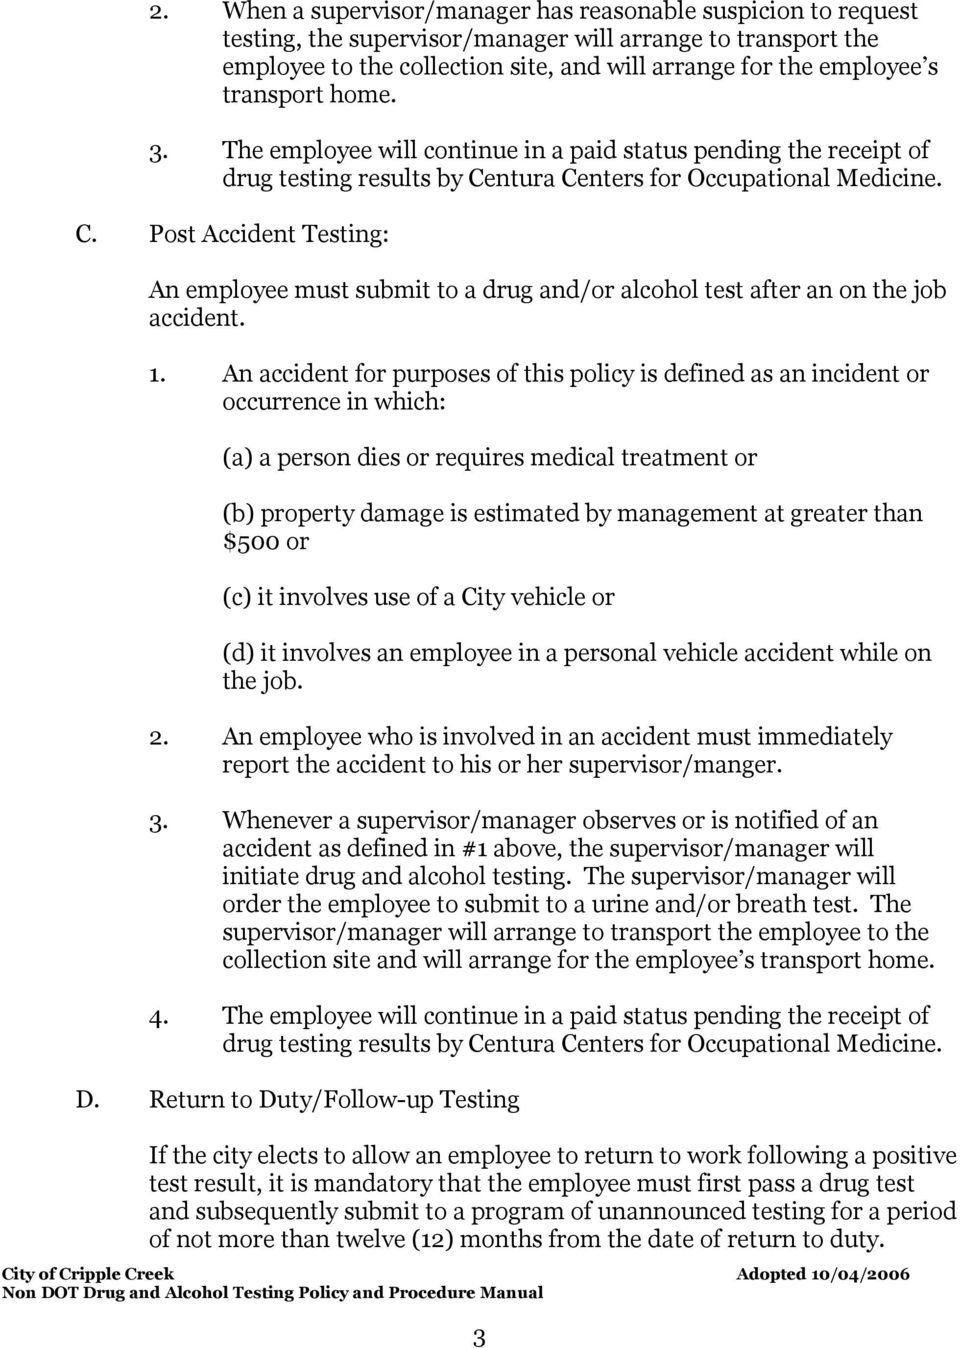 ntura Centers for Occupational Medicine. C. Post Accident Testing: An employee must submit to a drug and/or alcohol test after an on the job accident. 1.